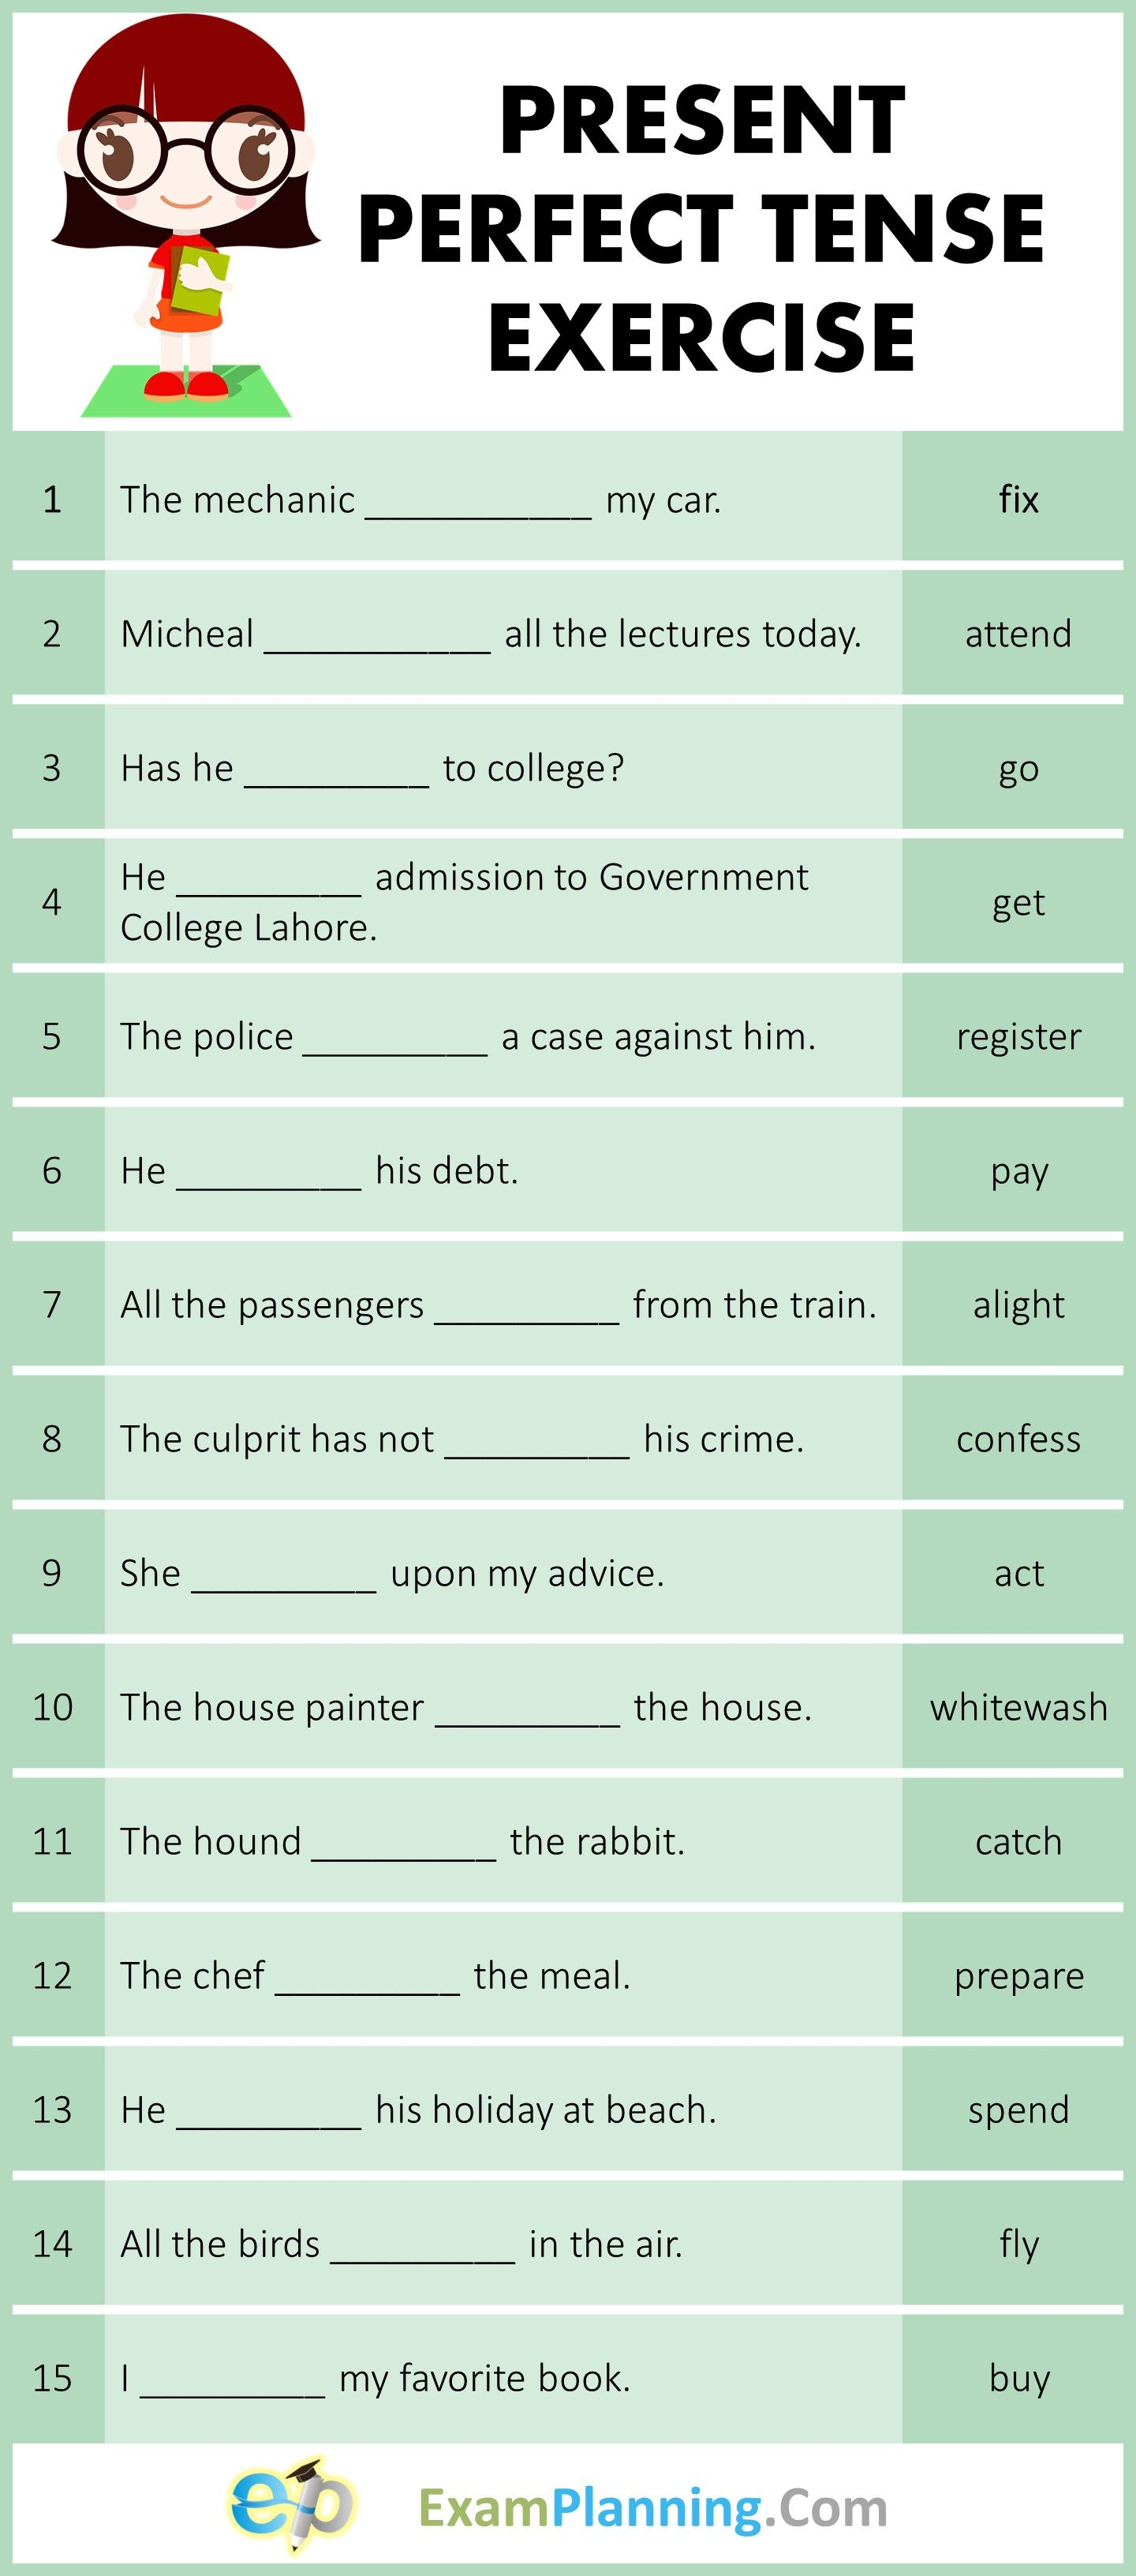 Present Perfect Tense Exercises In